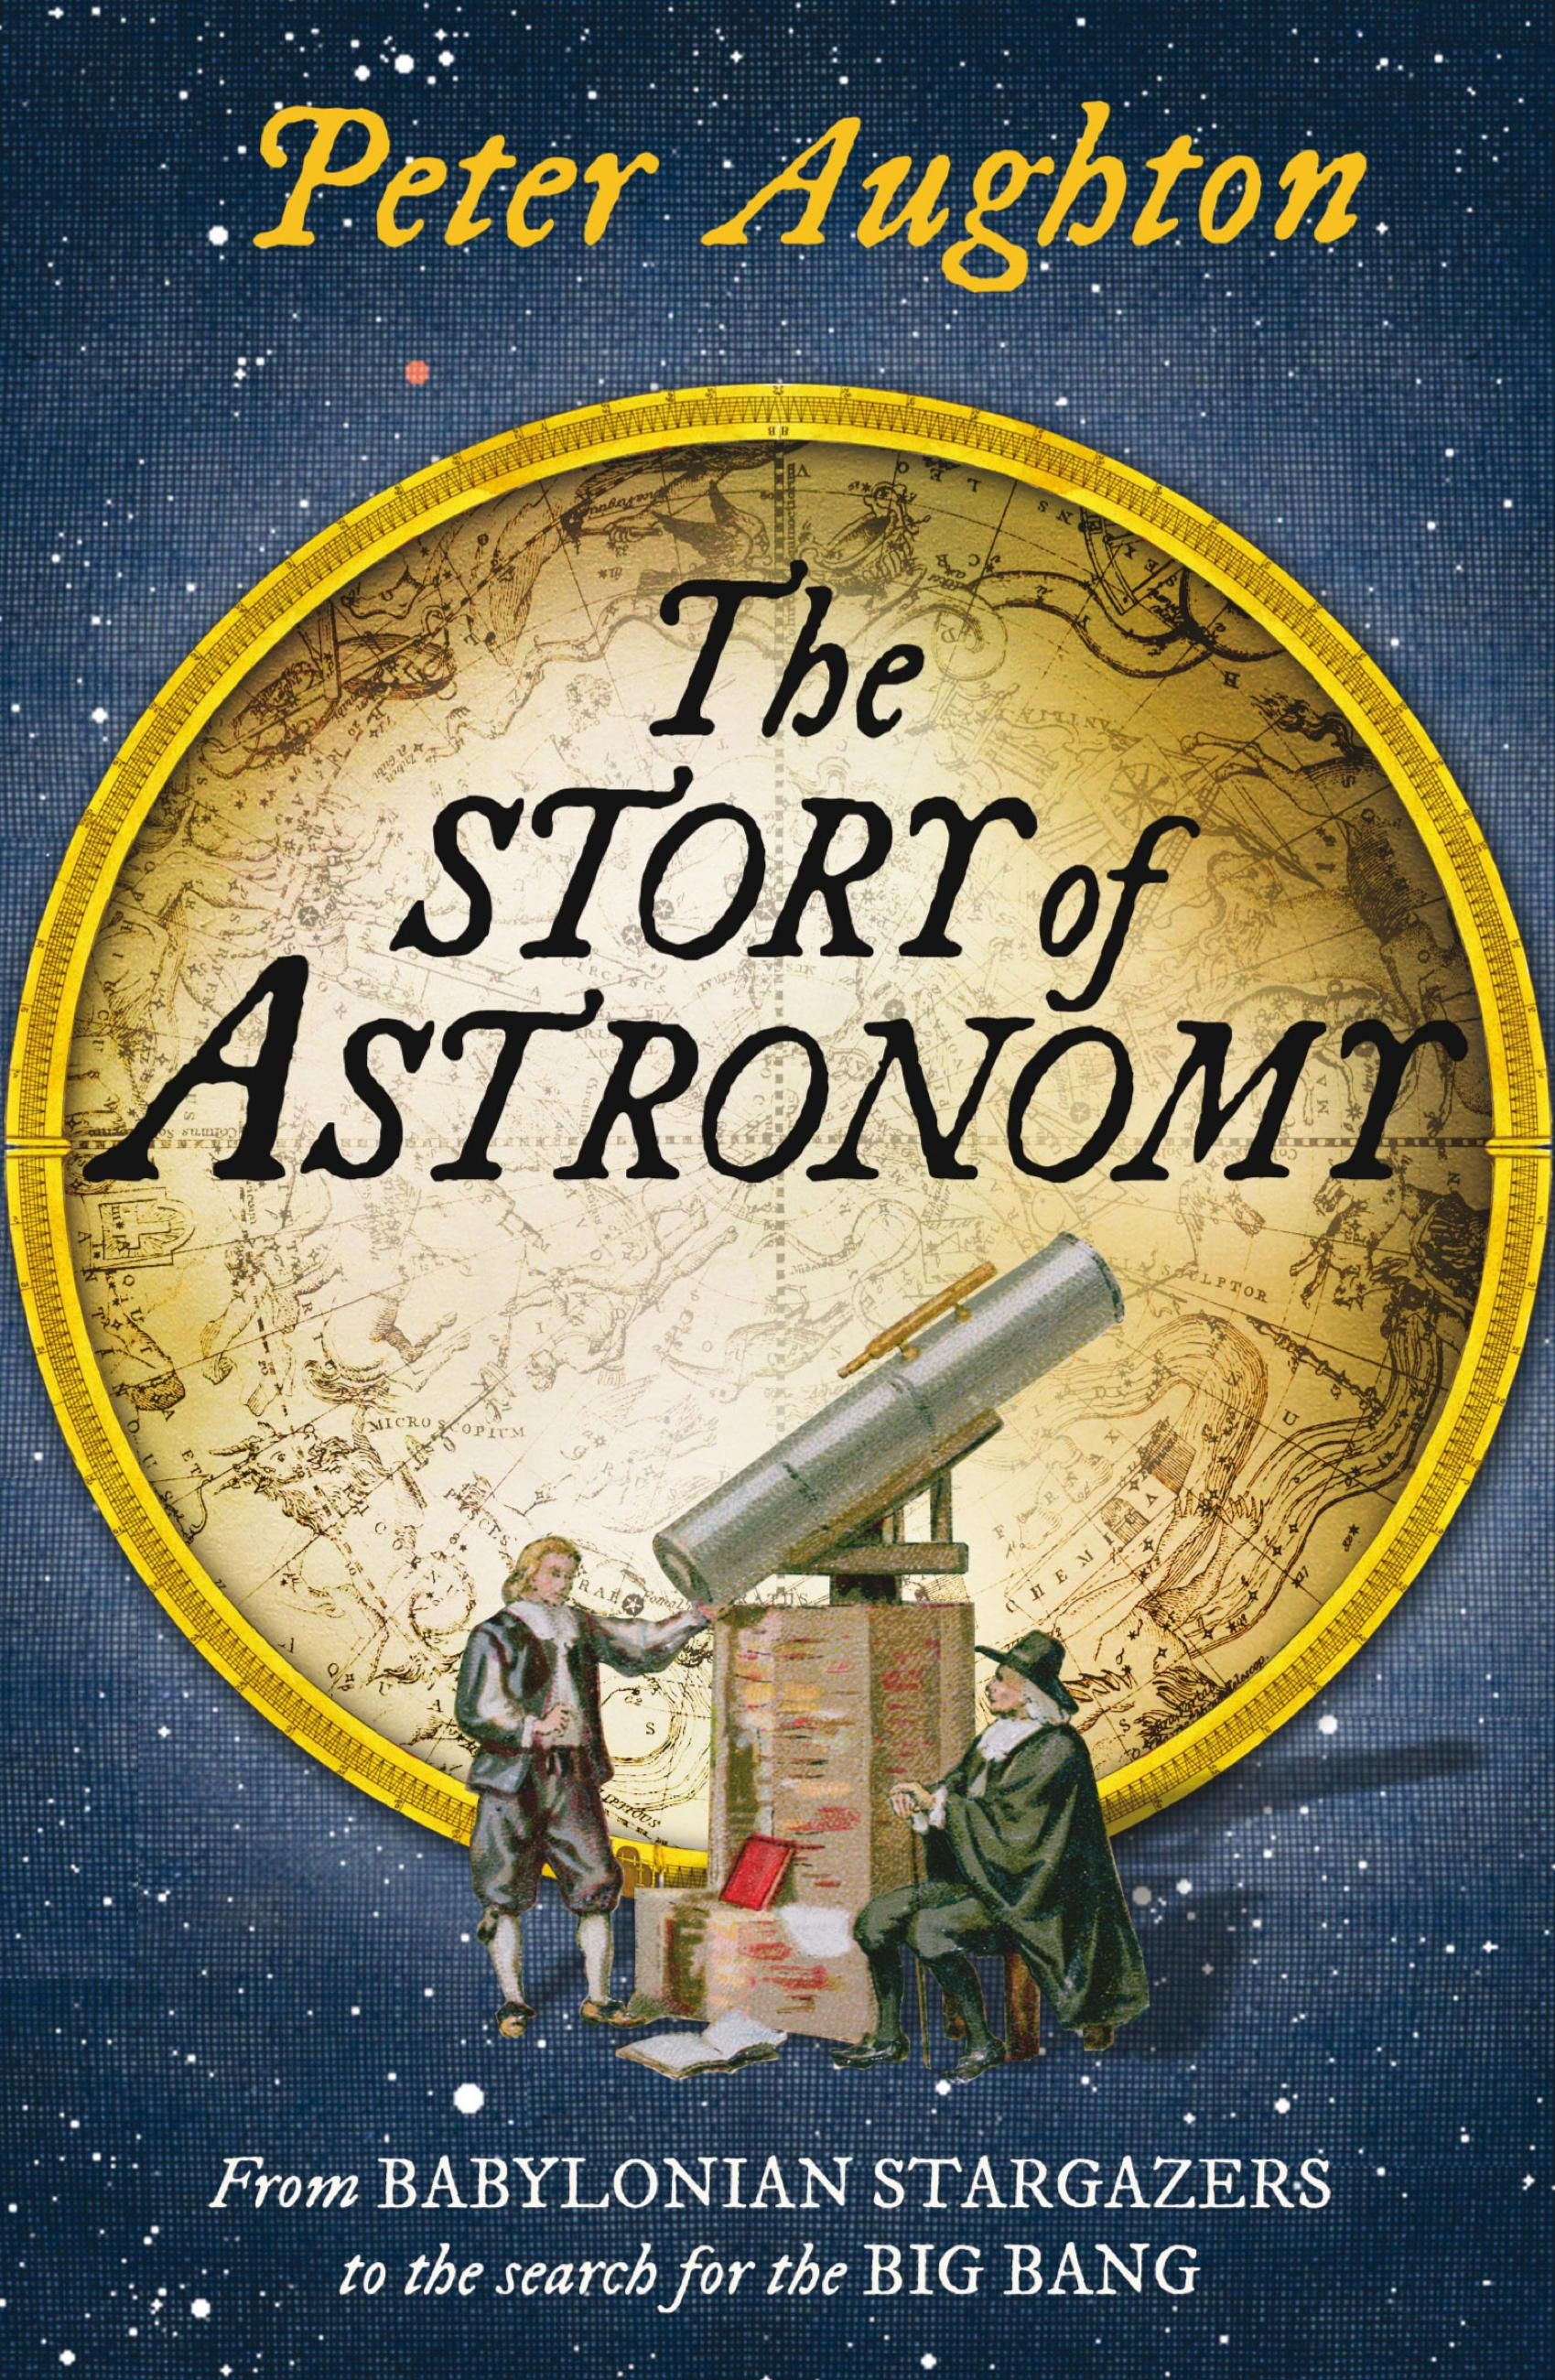 Story of Astronomy - Peter Aughton